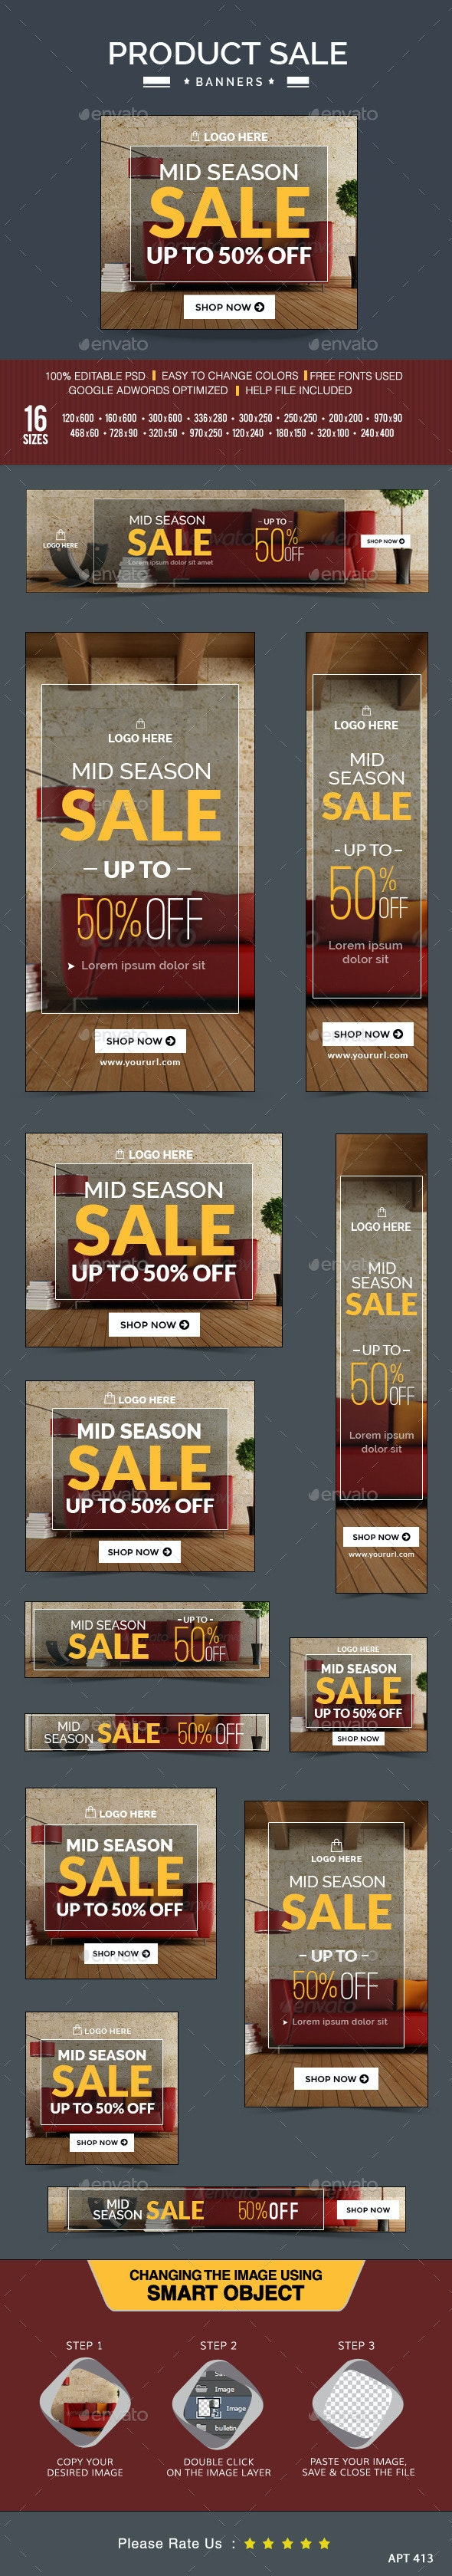 Mid Season Sale Banners - Banners & Ads Web Elements